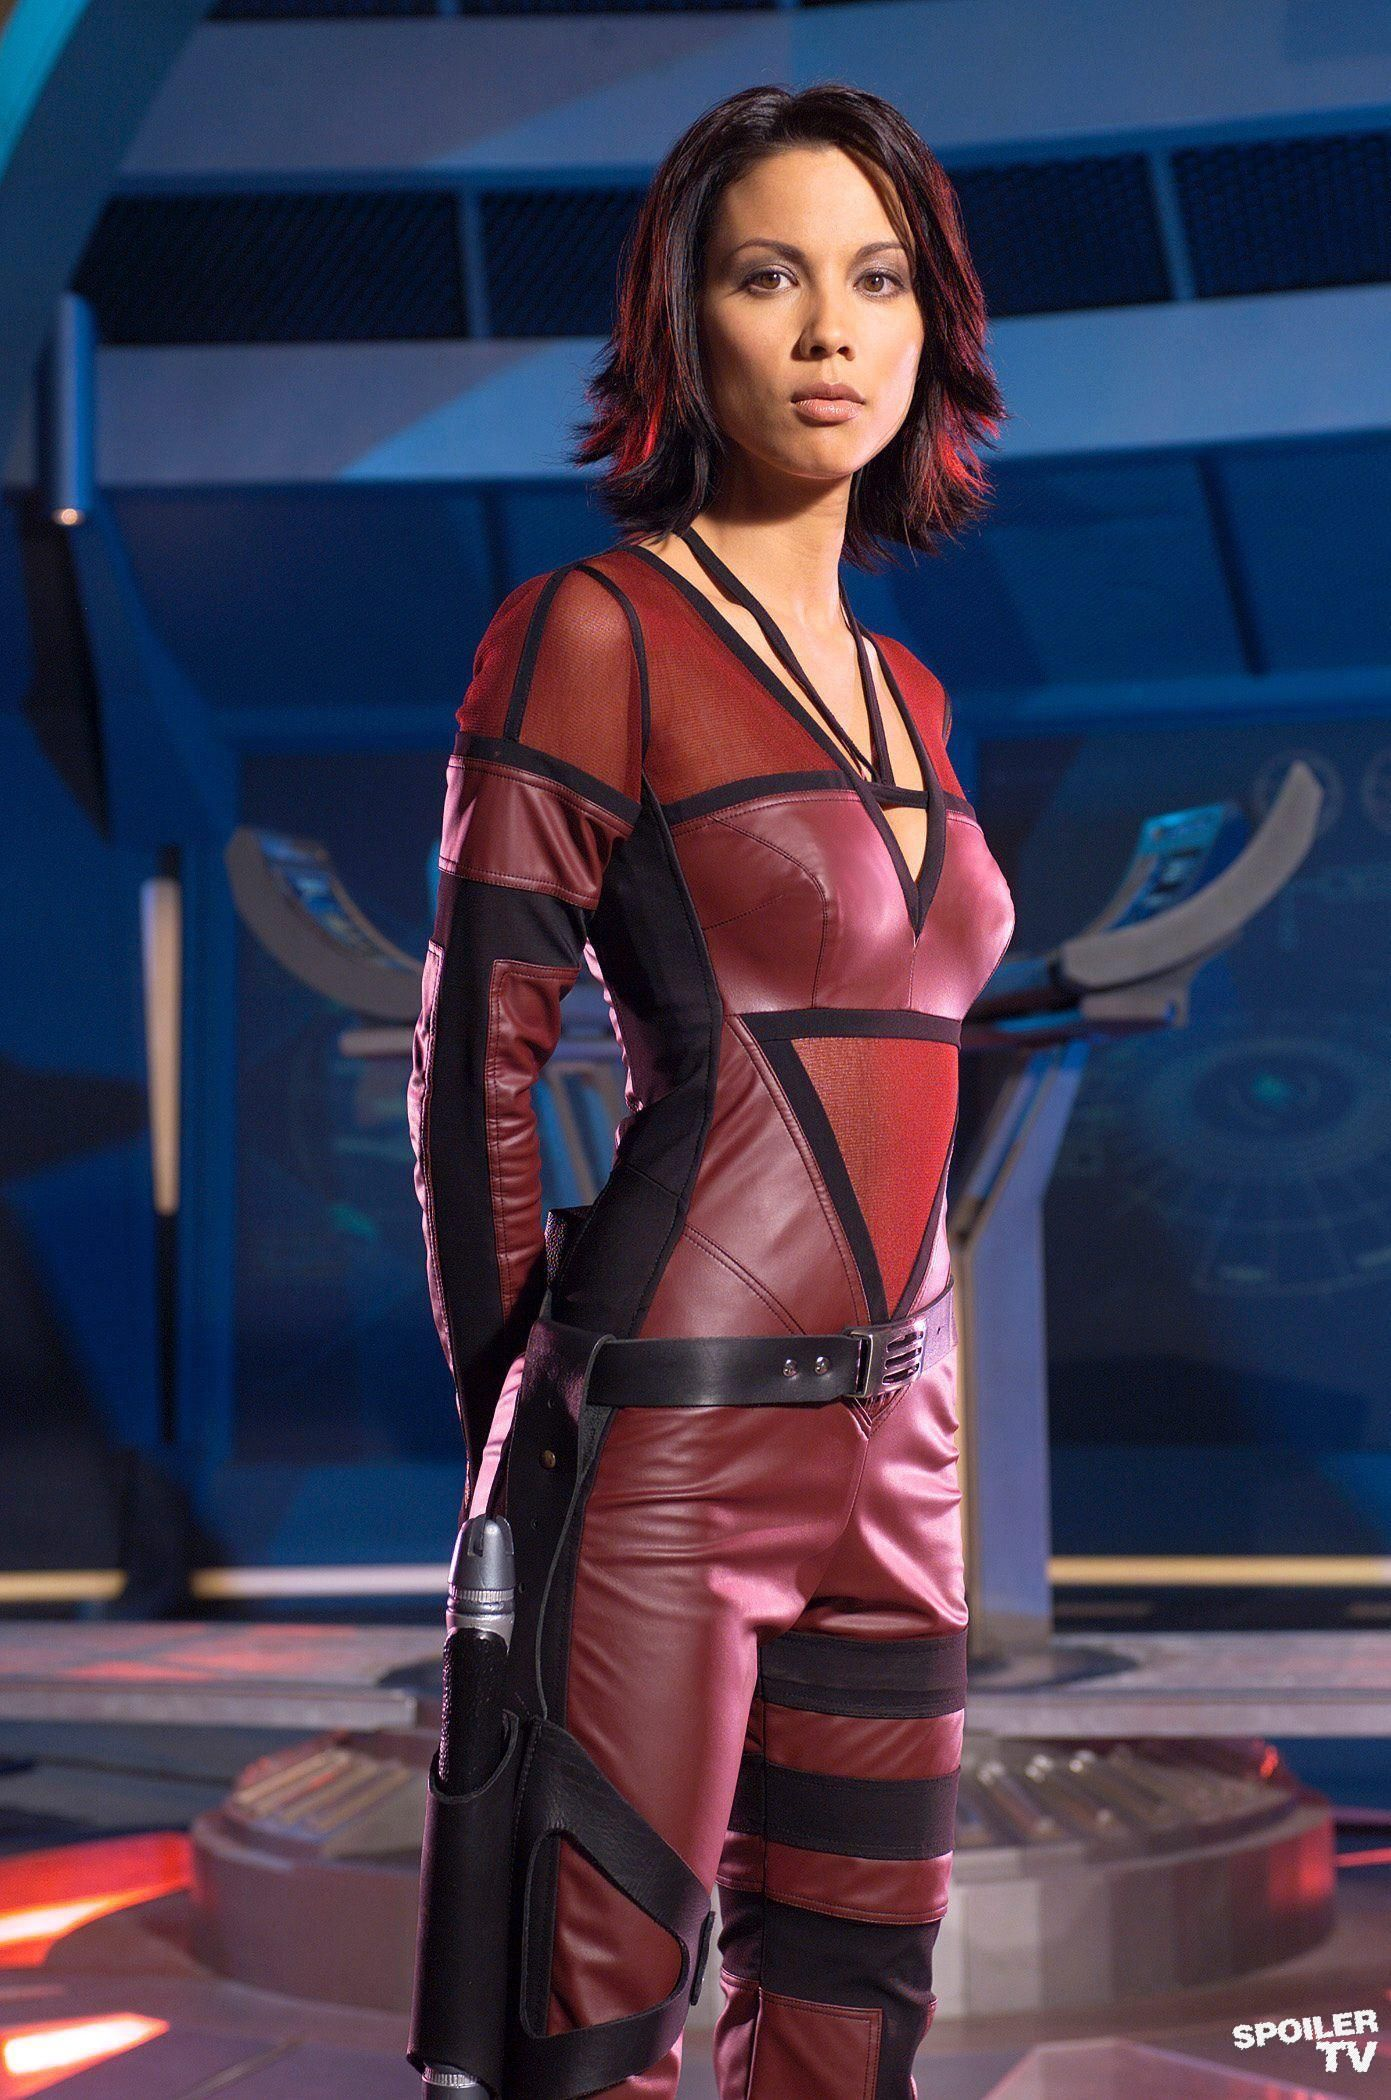 Best tits on andromeda tv show